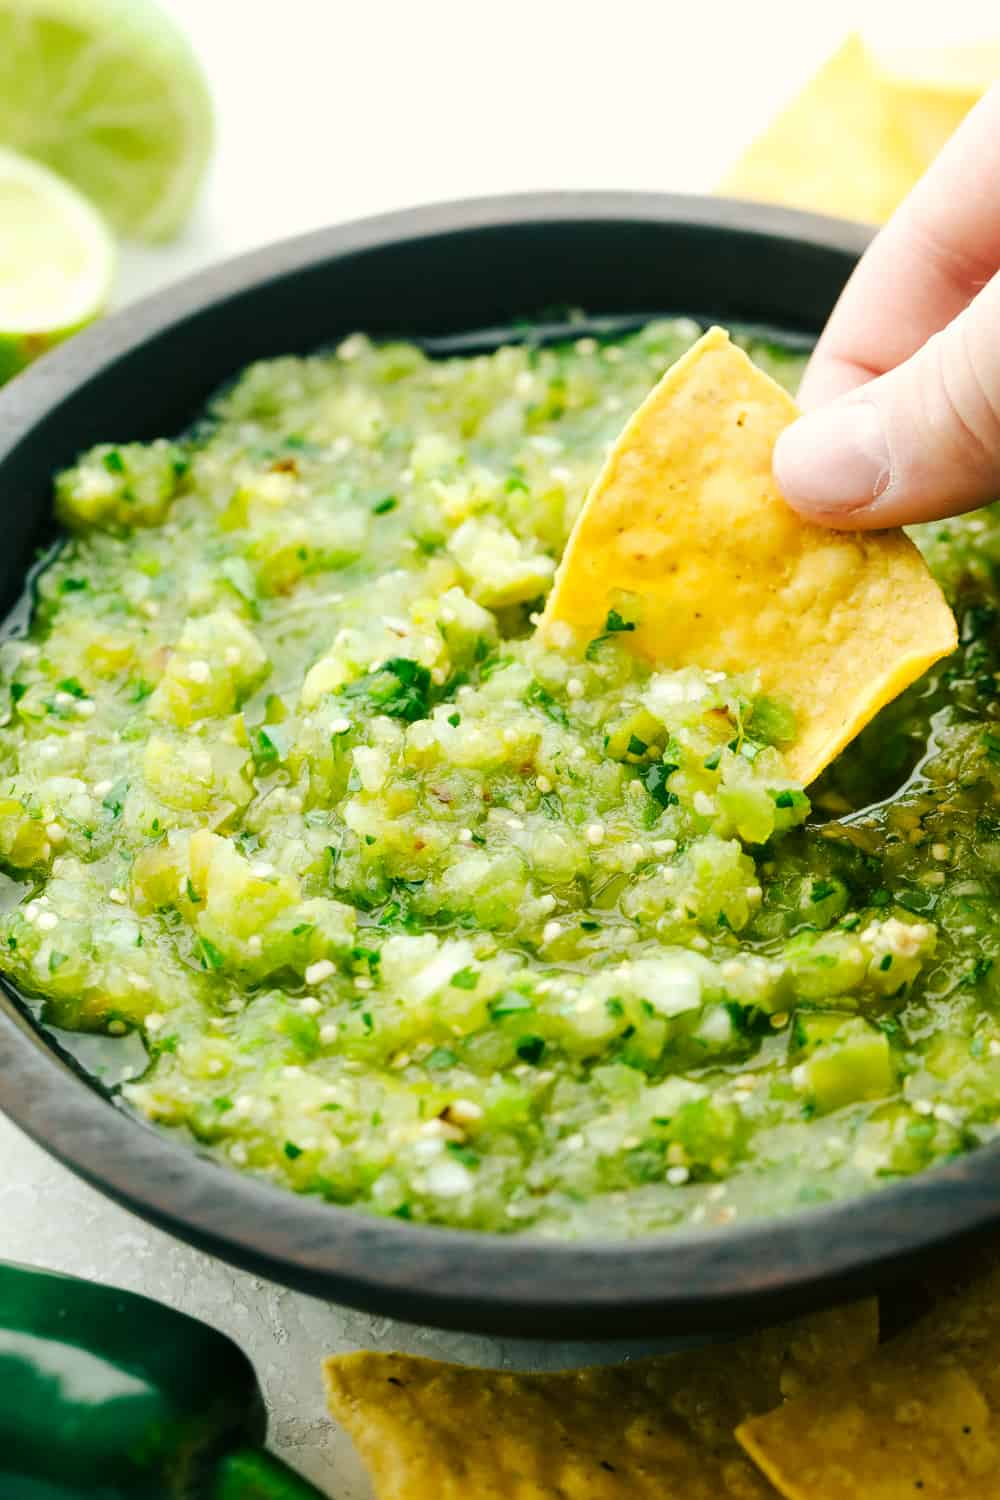 Dipping a chip in homemade salsa verde.